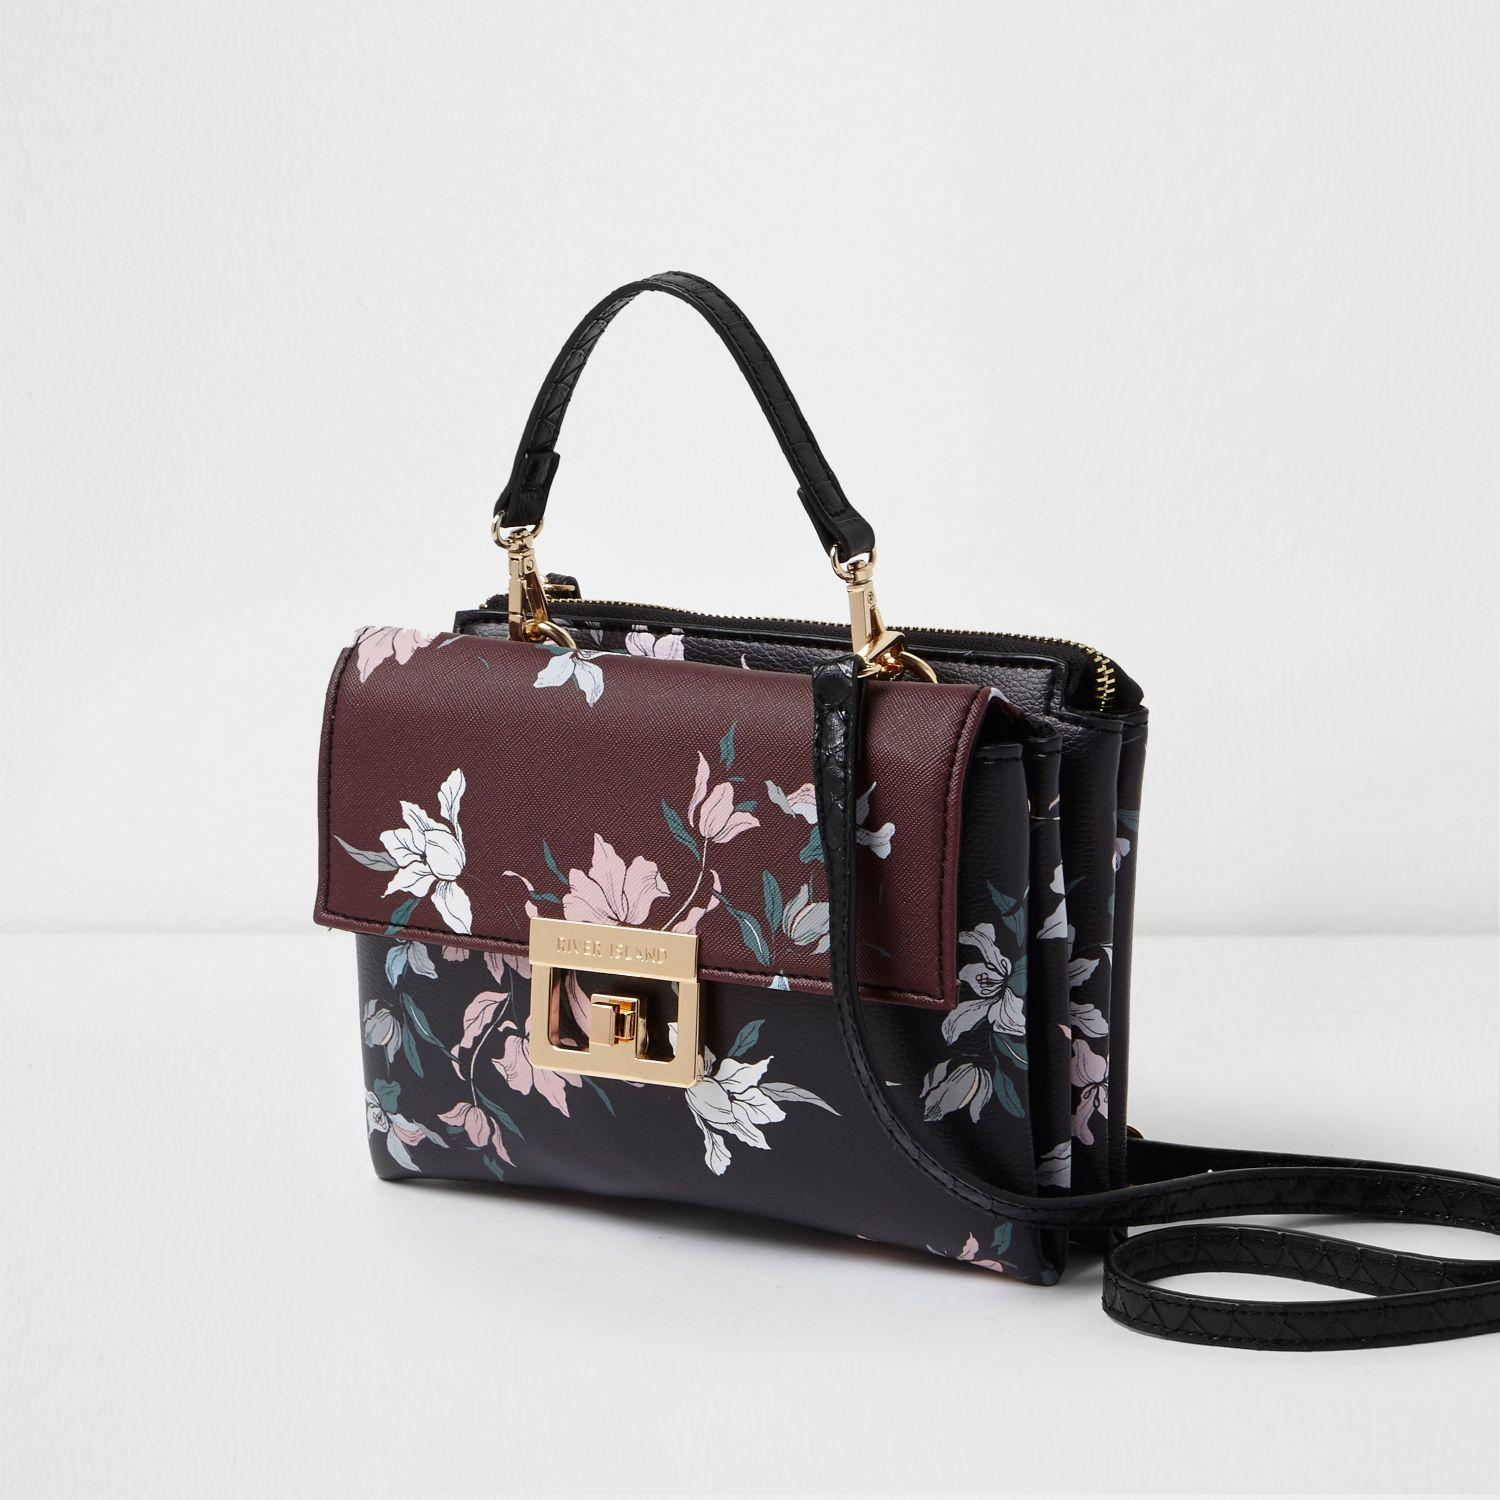 Lyst - River Island Dark Red Floral Print Lock Front Mini Bag In Red